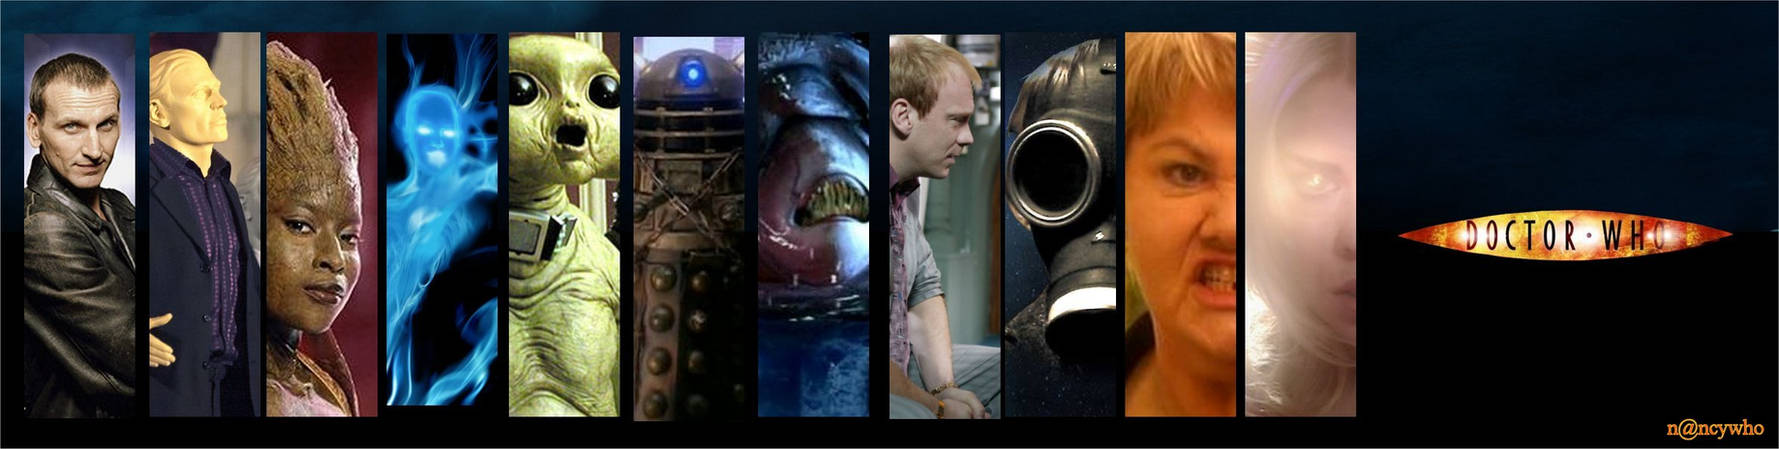 Doctor Who banner series 1